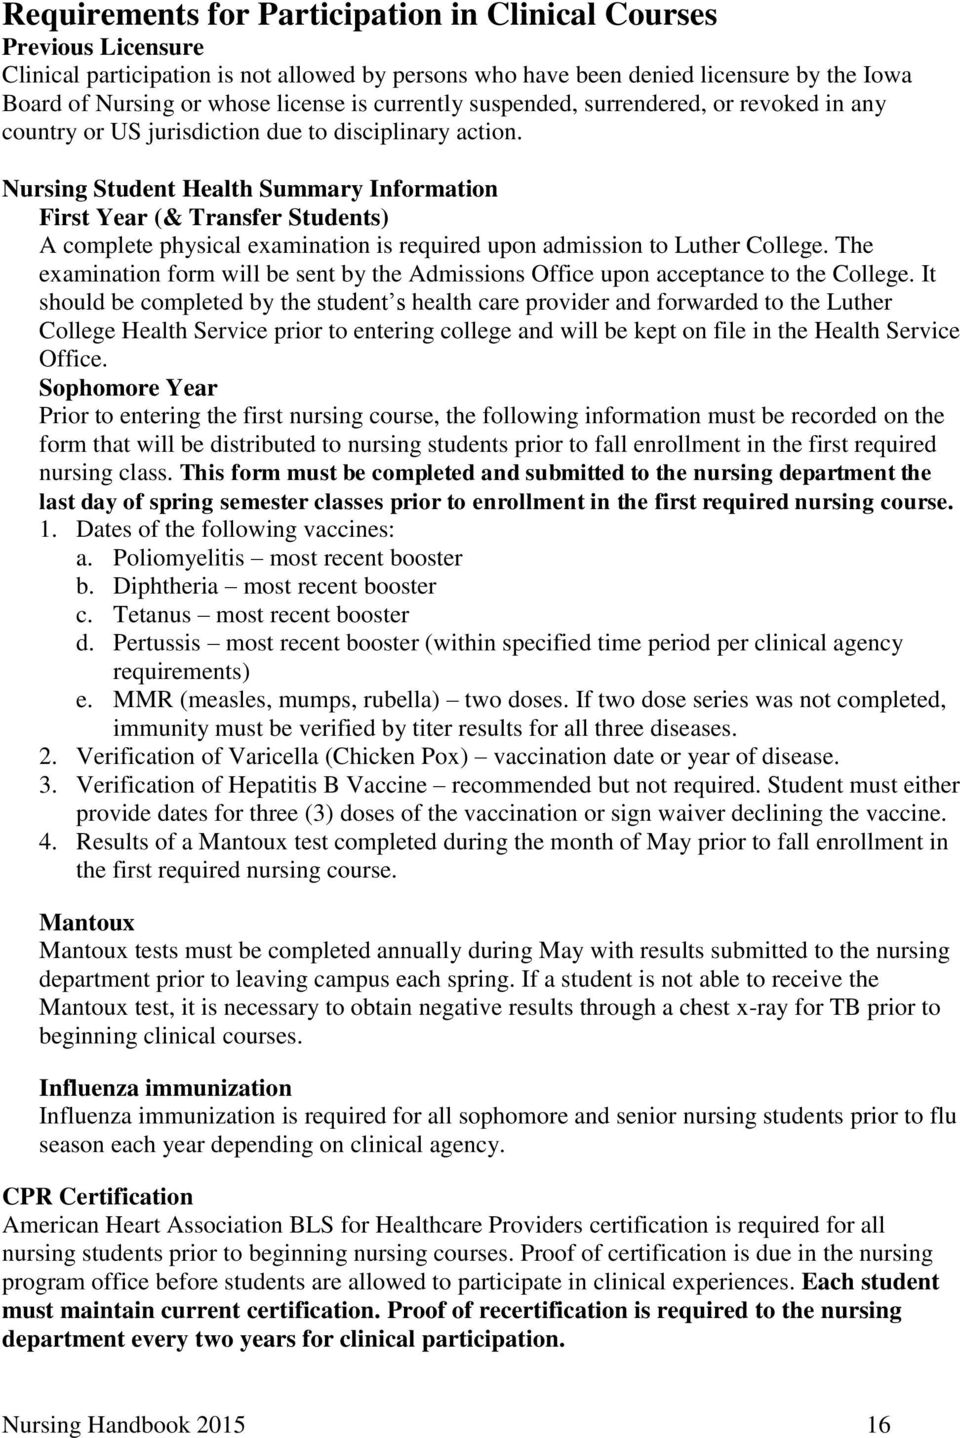 Nursing Student Health Summary Information First Year (& Transfer Students) A complete physical examination is required upon admission to Luther College.